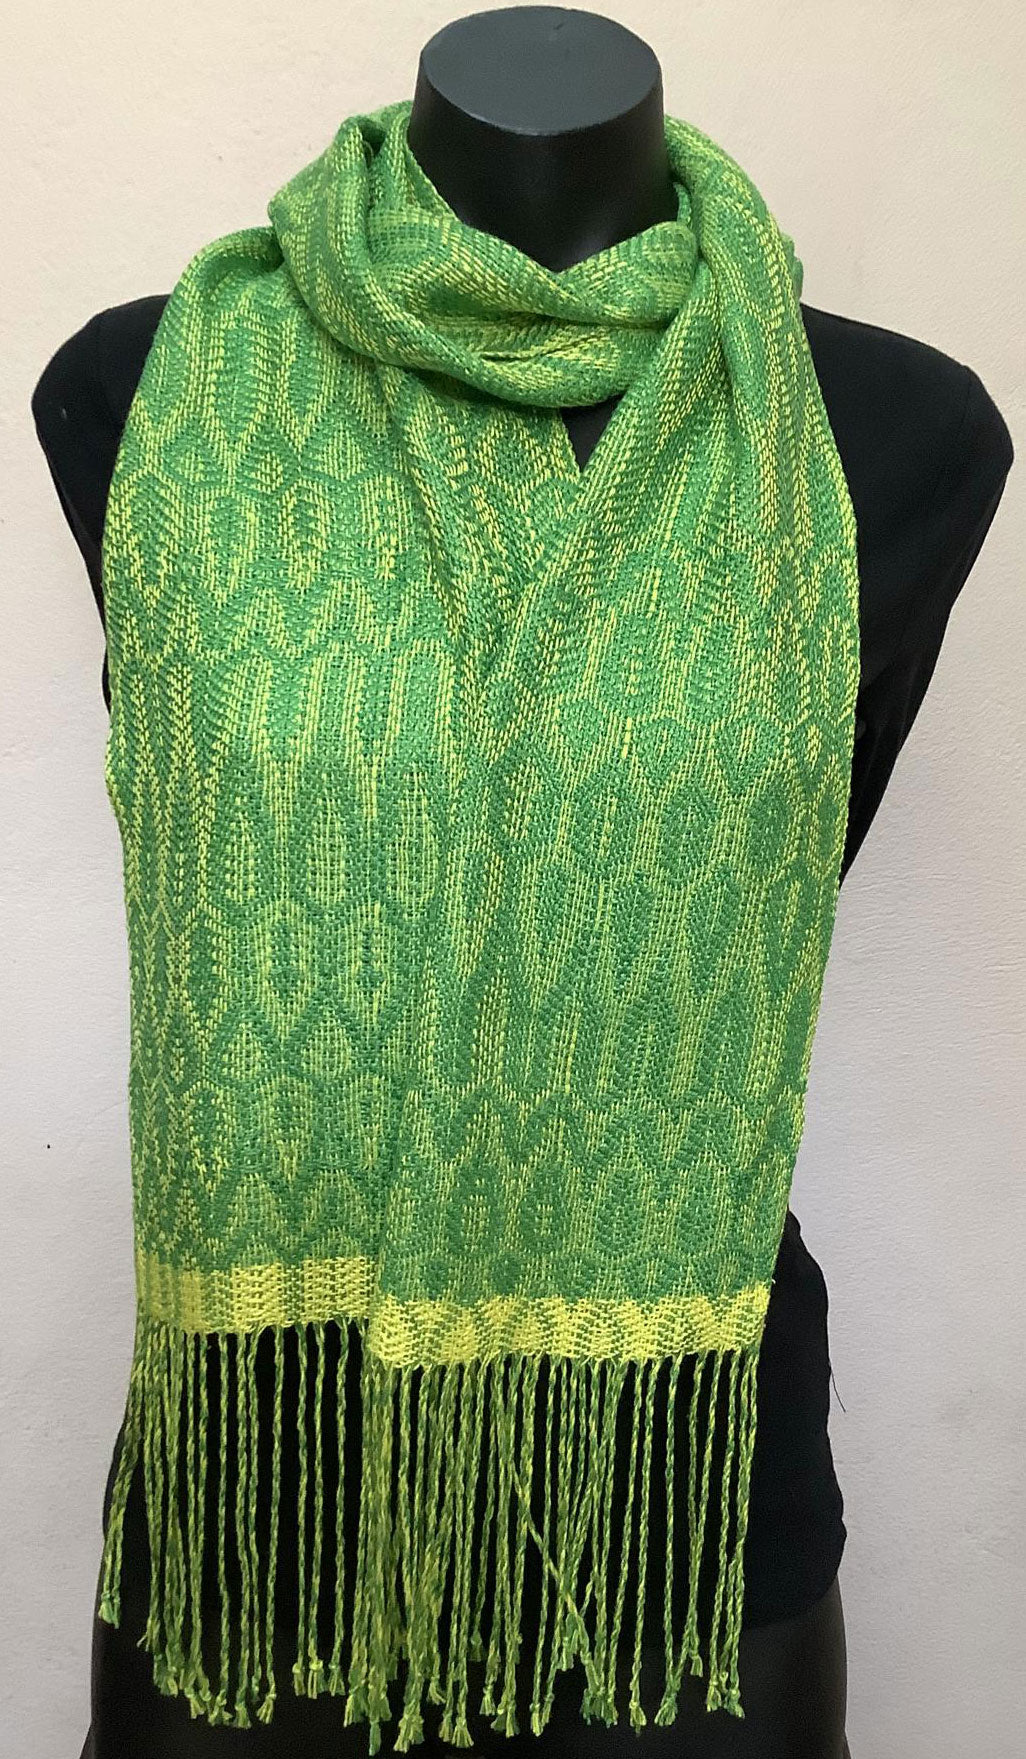 Silk scarf handwoven by Vicki Lowery